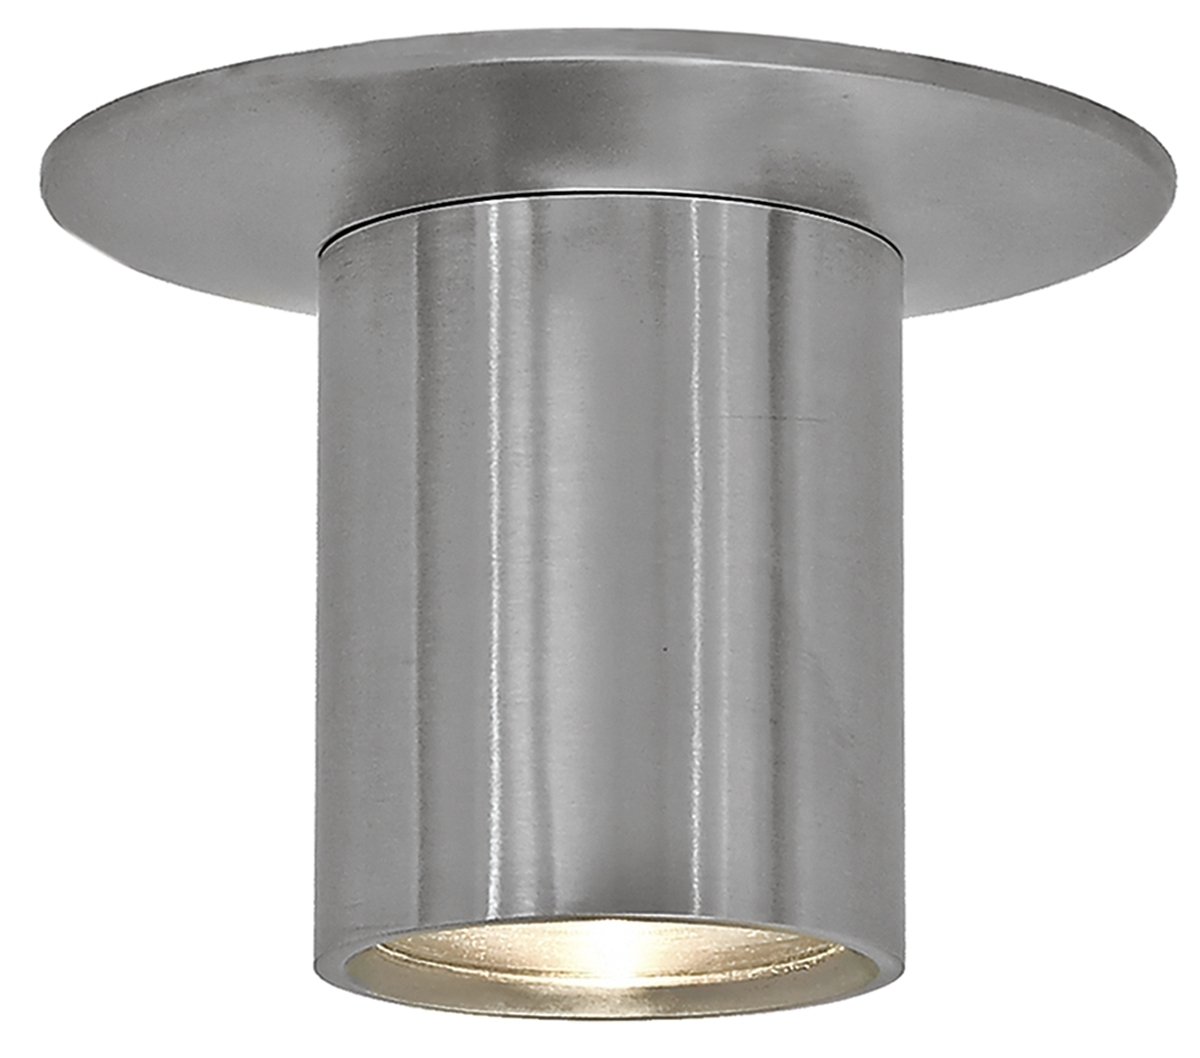 Outdoor Ceiling Downlights For 2018 H2 120 Volt Ceiling Mount Downlightpureedge Lighting (View 12 of 20)